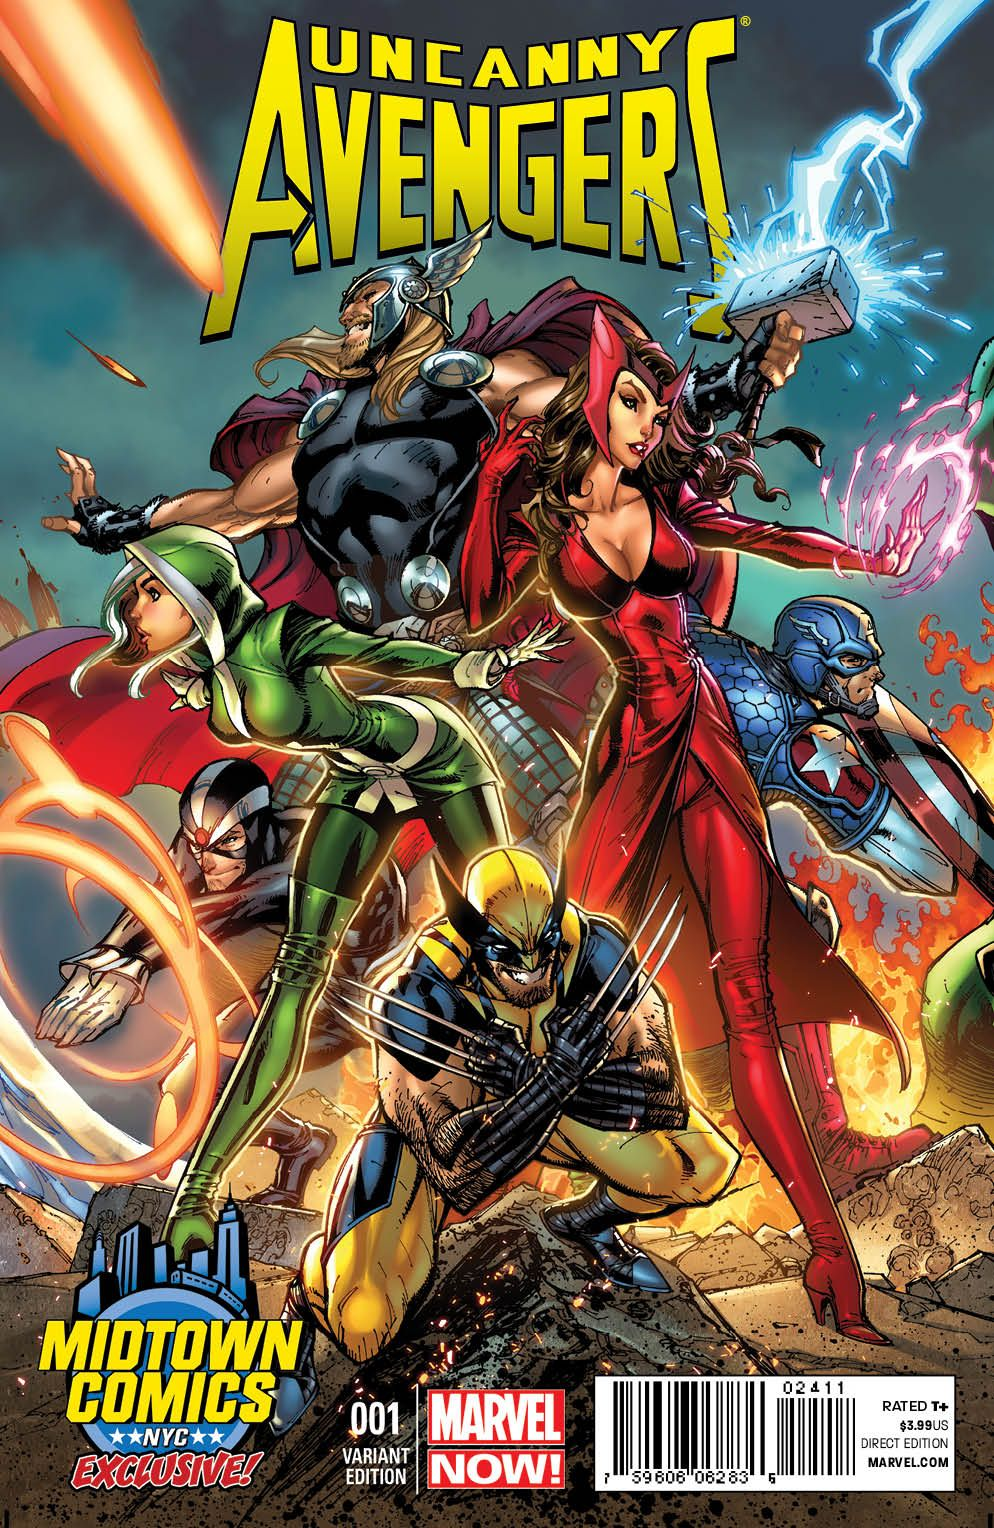 The First Of Three Midtown Comics Exclusive Marvel NOW Covers By J Scott Campbell